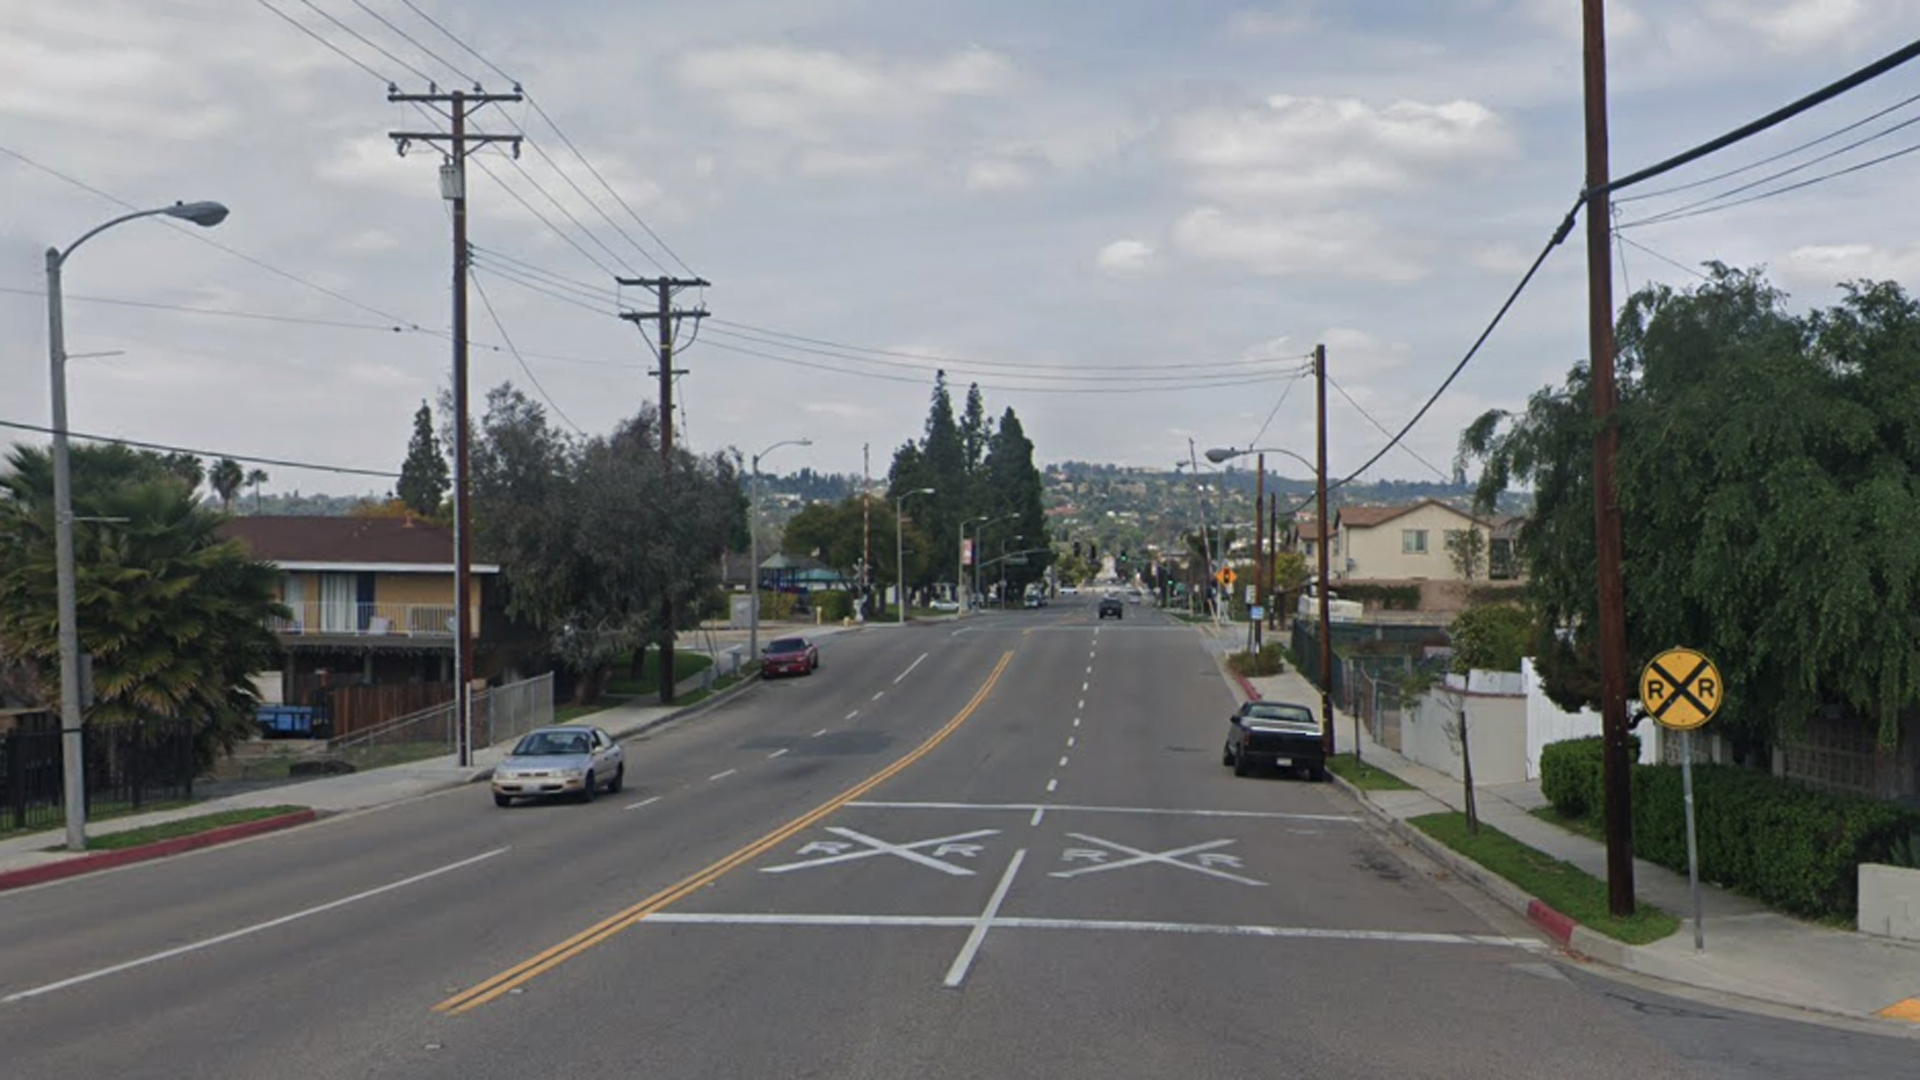 The 500 block of South Euclid Street in La Habra, as pictured in a Google Street View image.